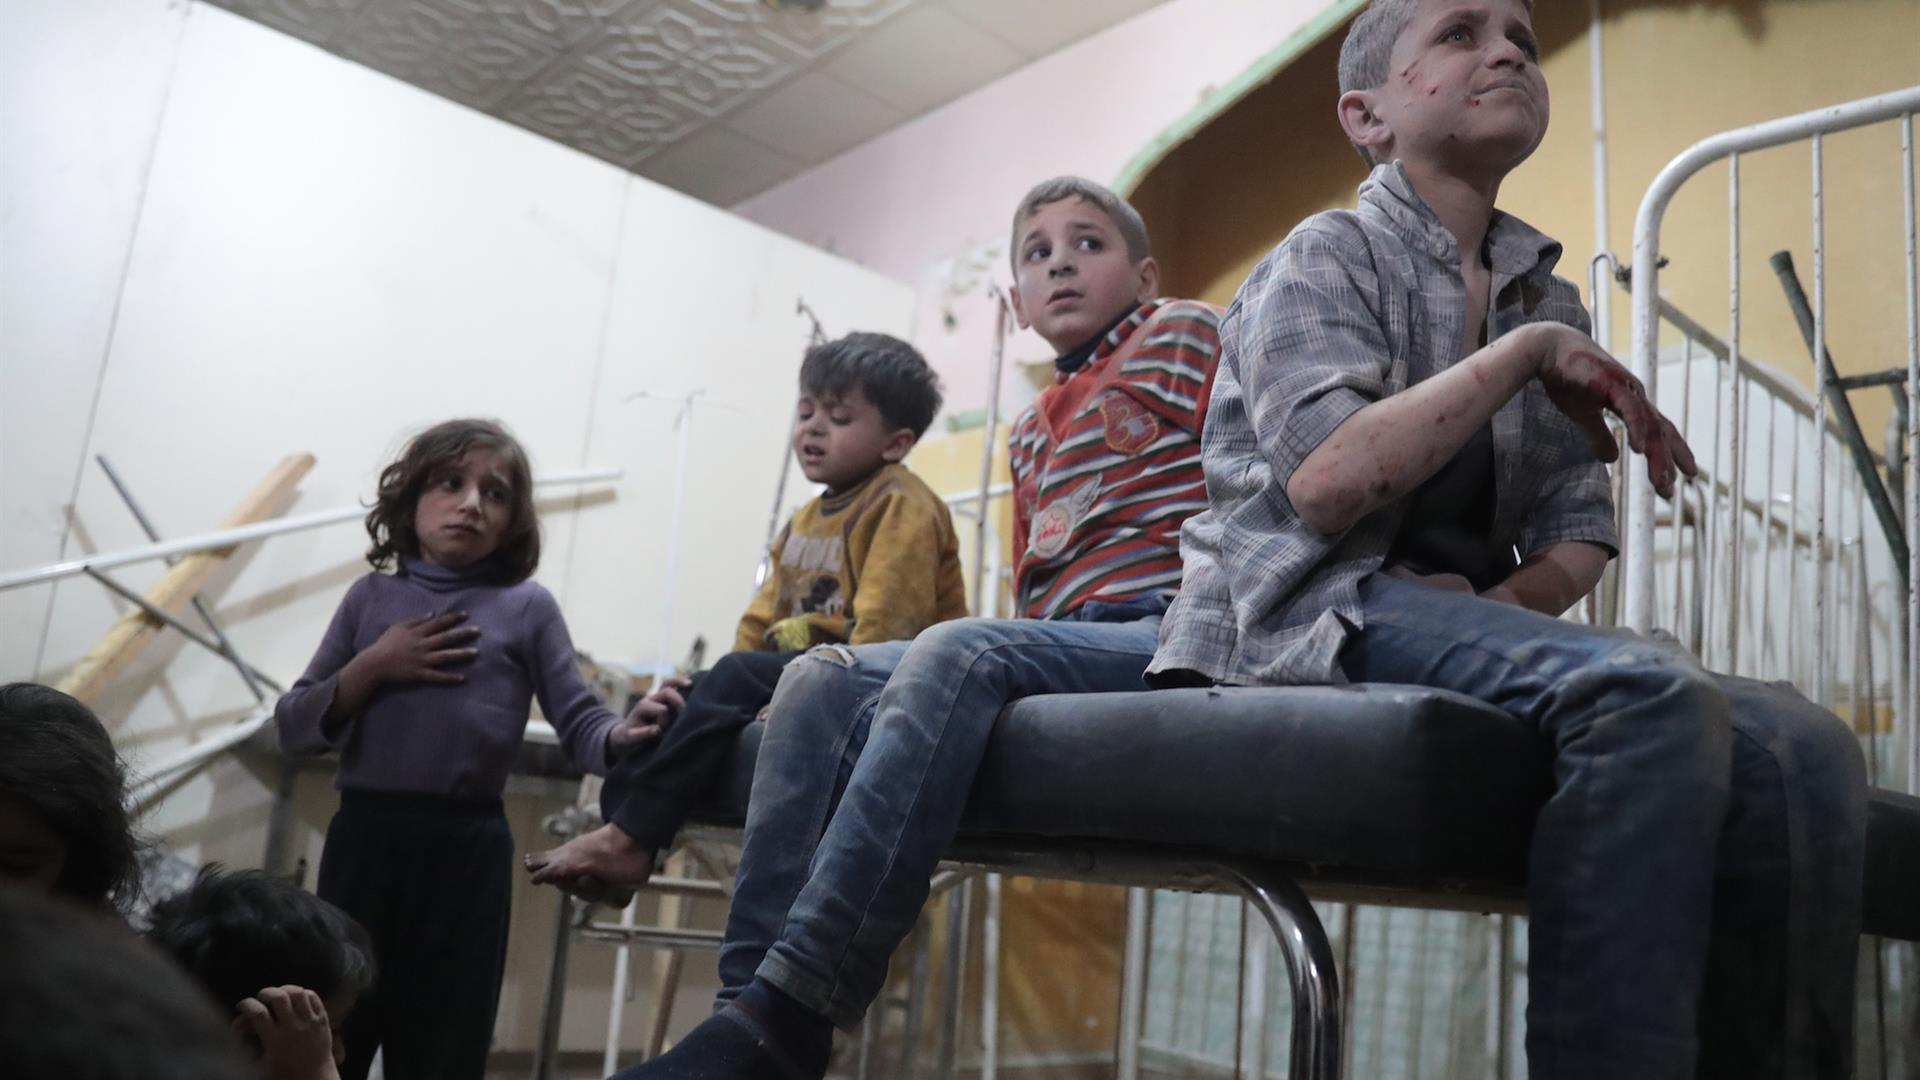 Bambini Siria ABD DOUMANY:AFP:Getty Images